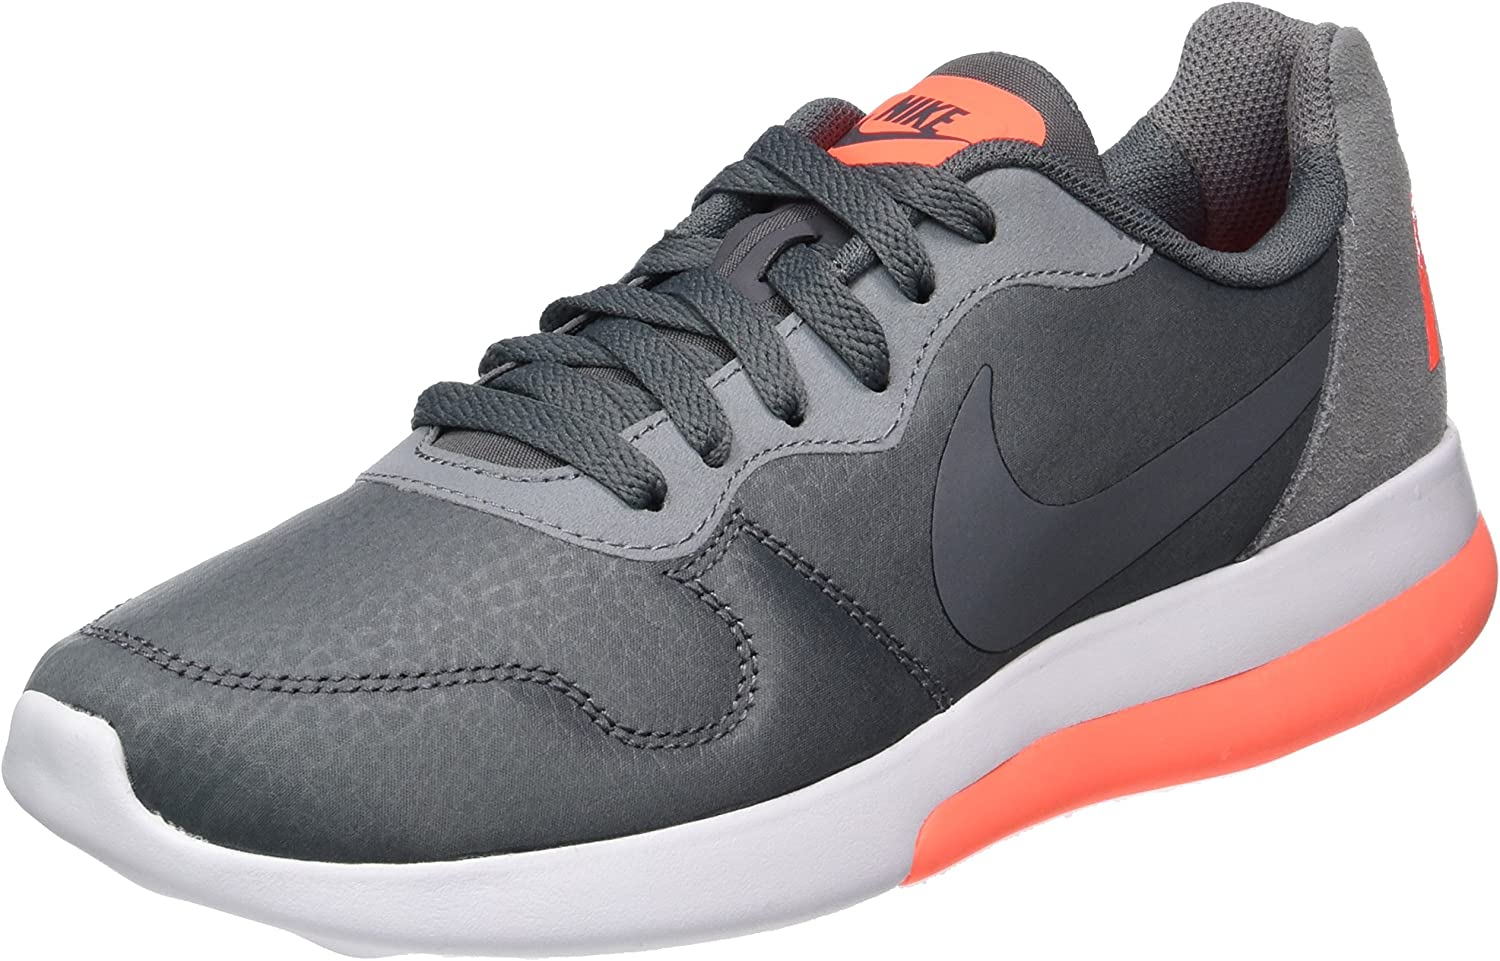 Nike Men's Md Runner 2 Lw Sneakers